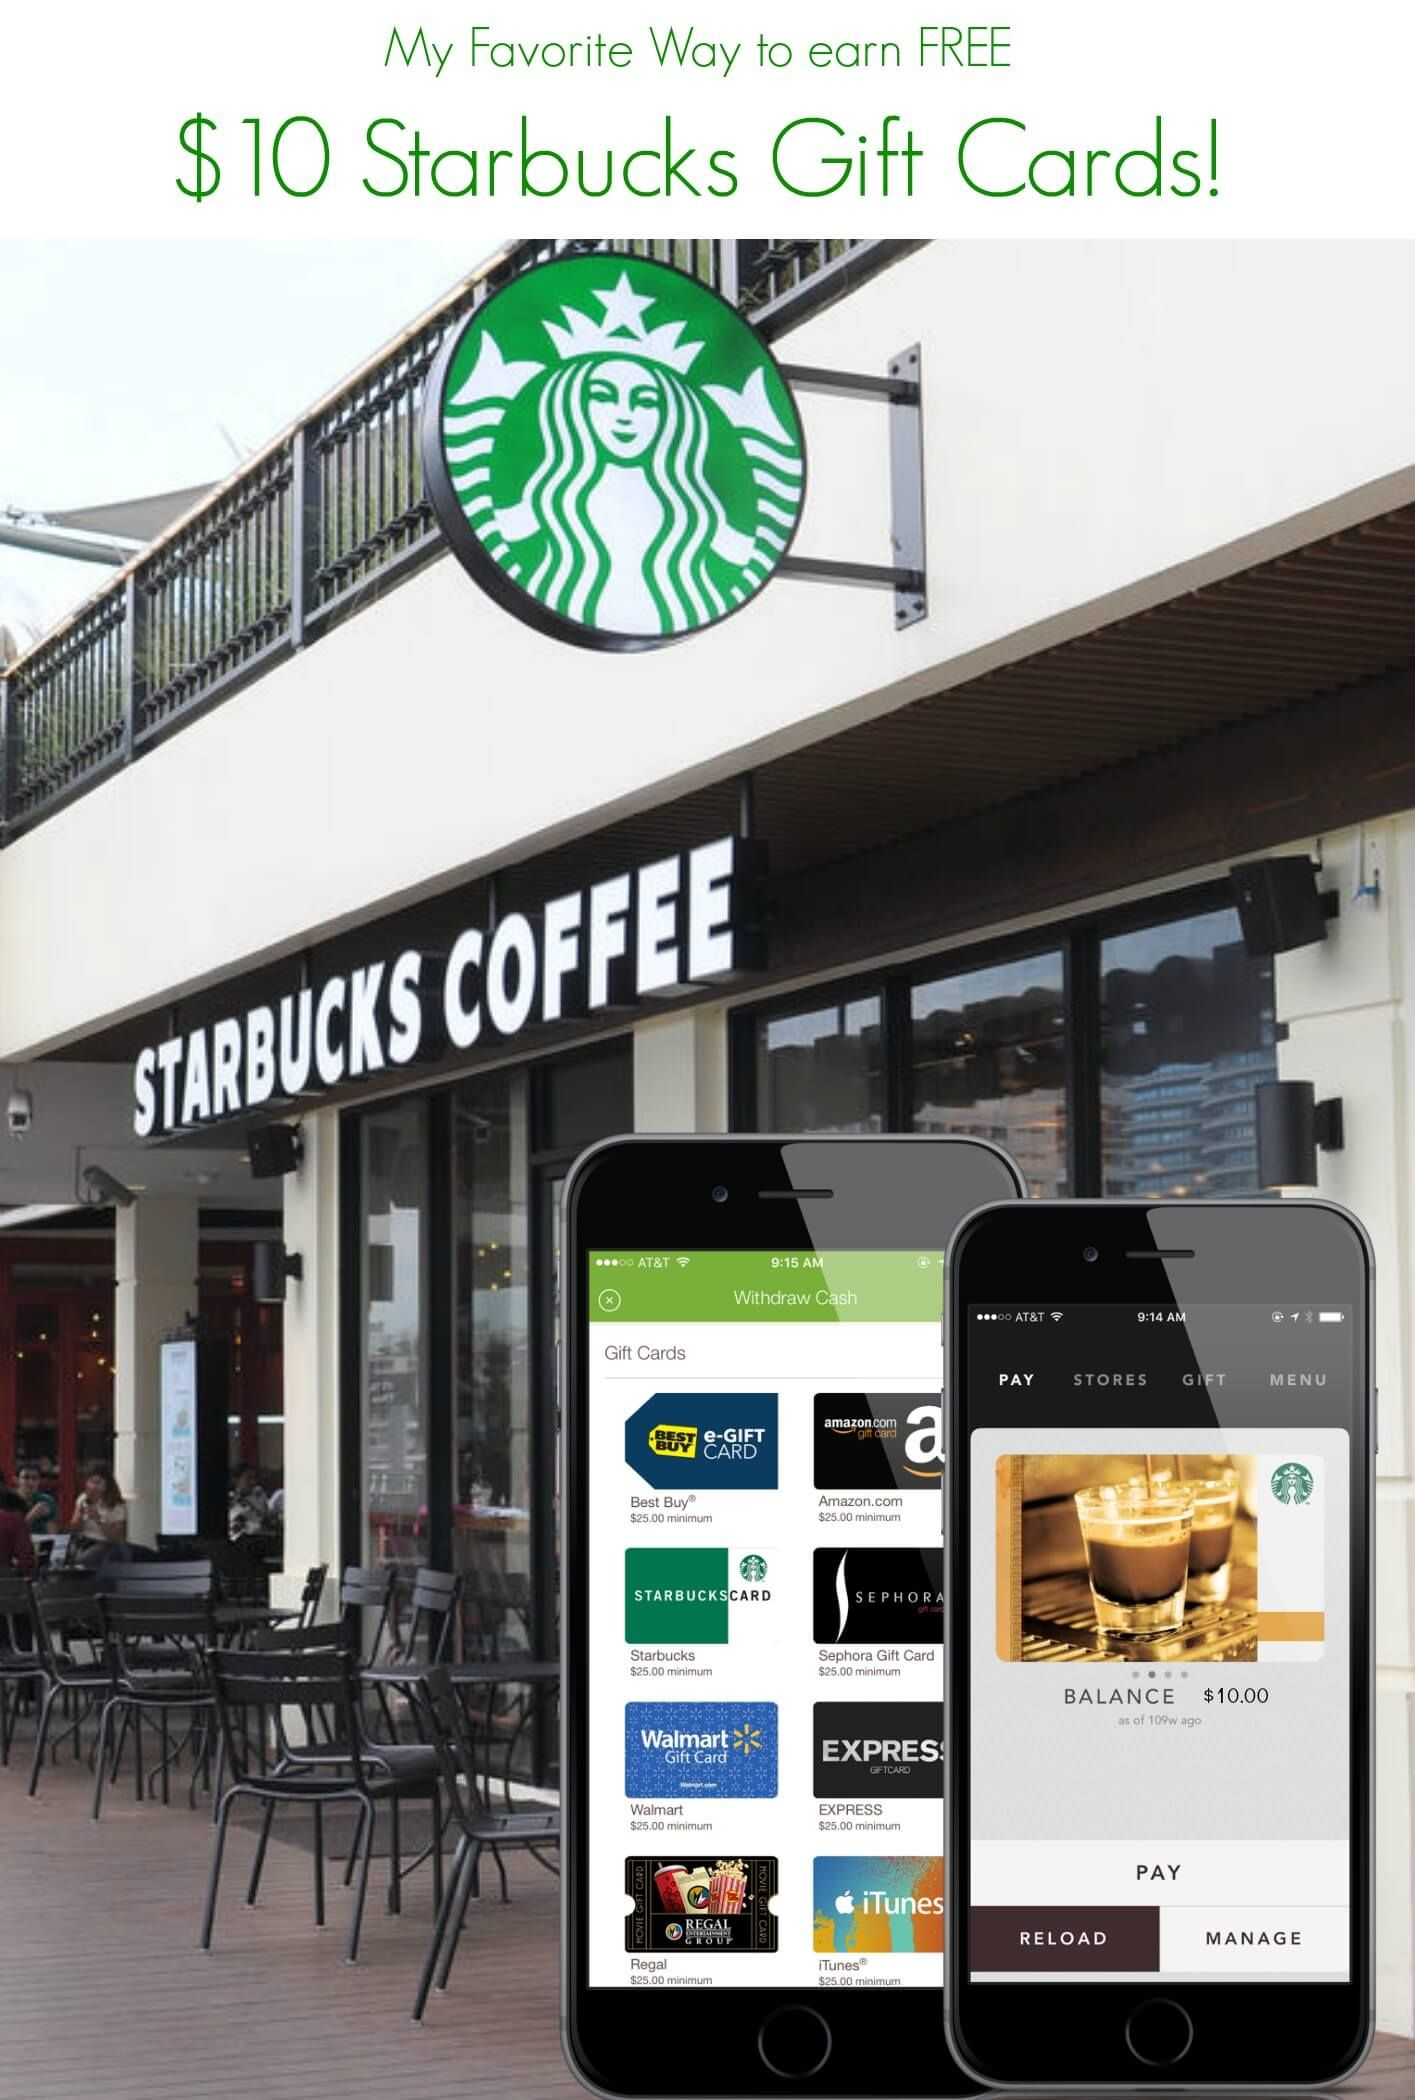 Free starbucks gift cards how to earn a 10 starbucks